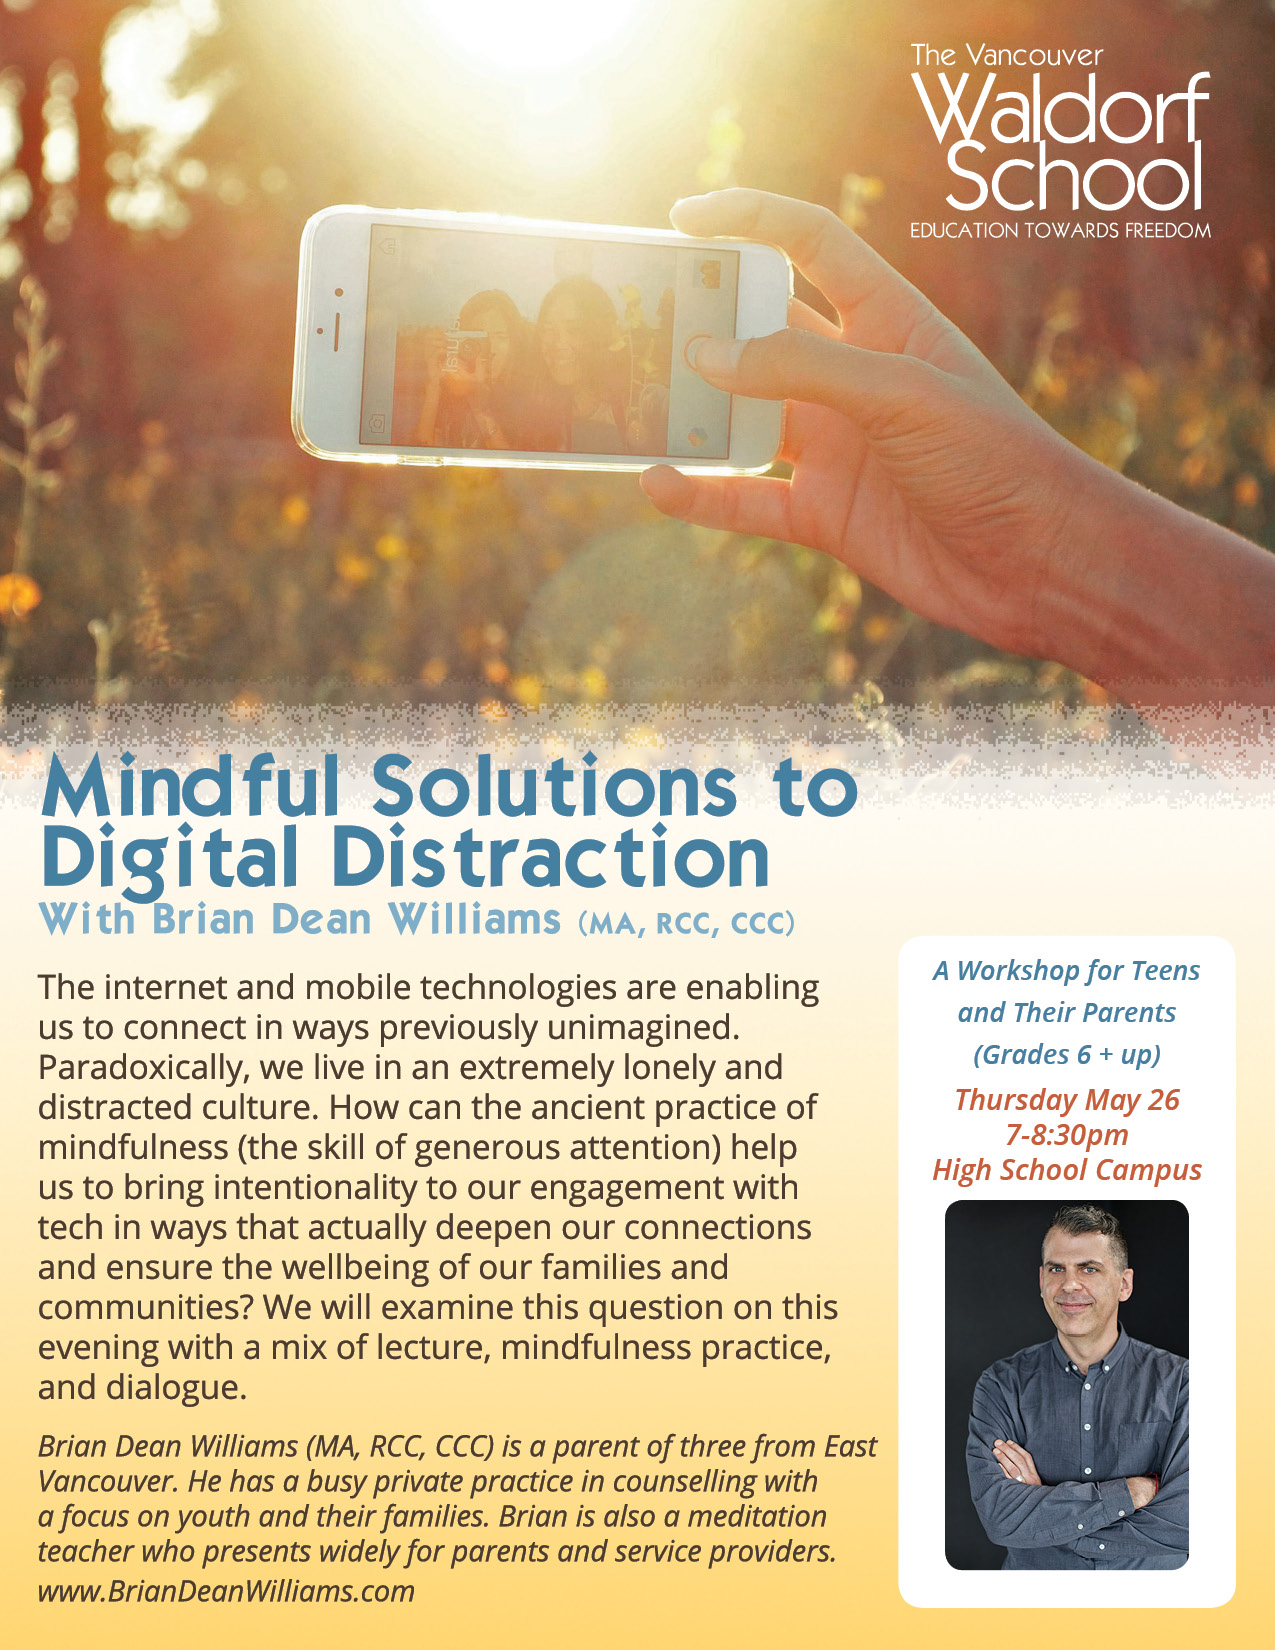 Mindful Solutions to Digital Distraction @ High School Campus